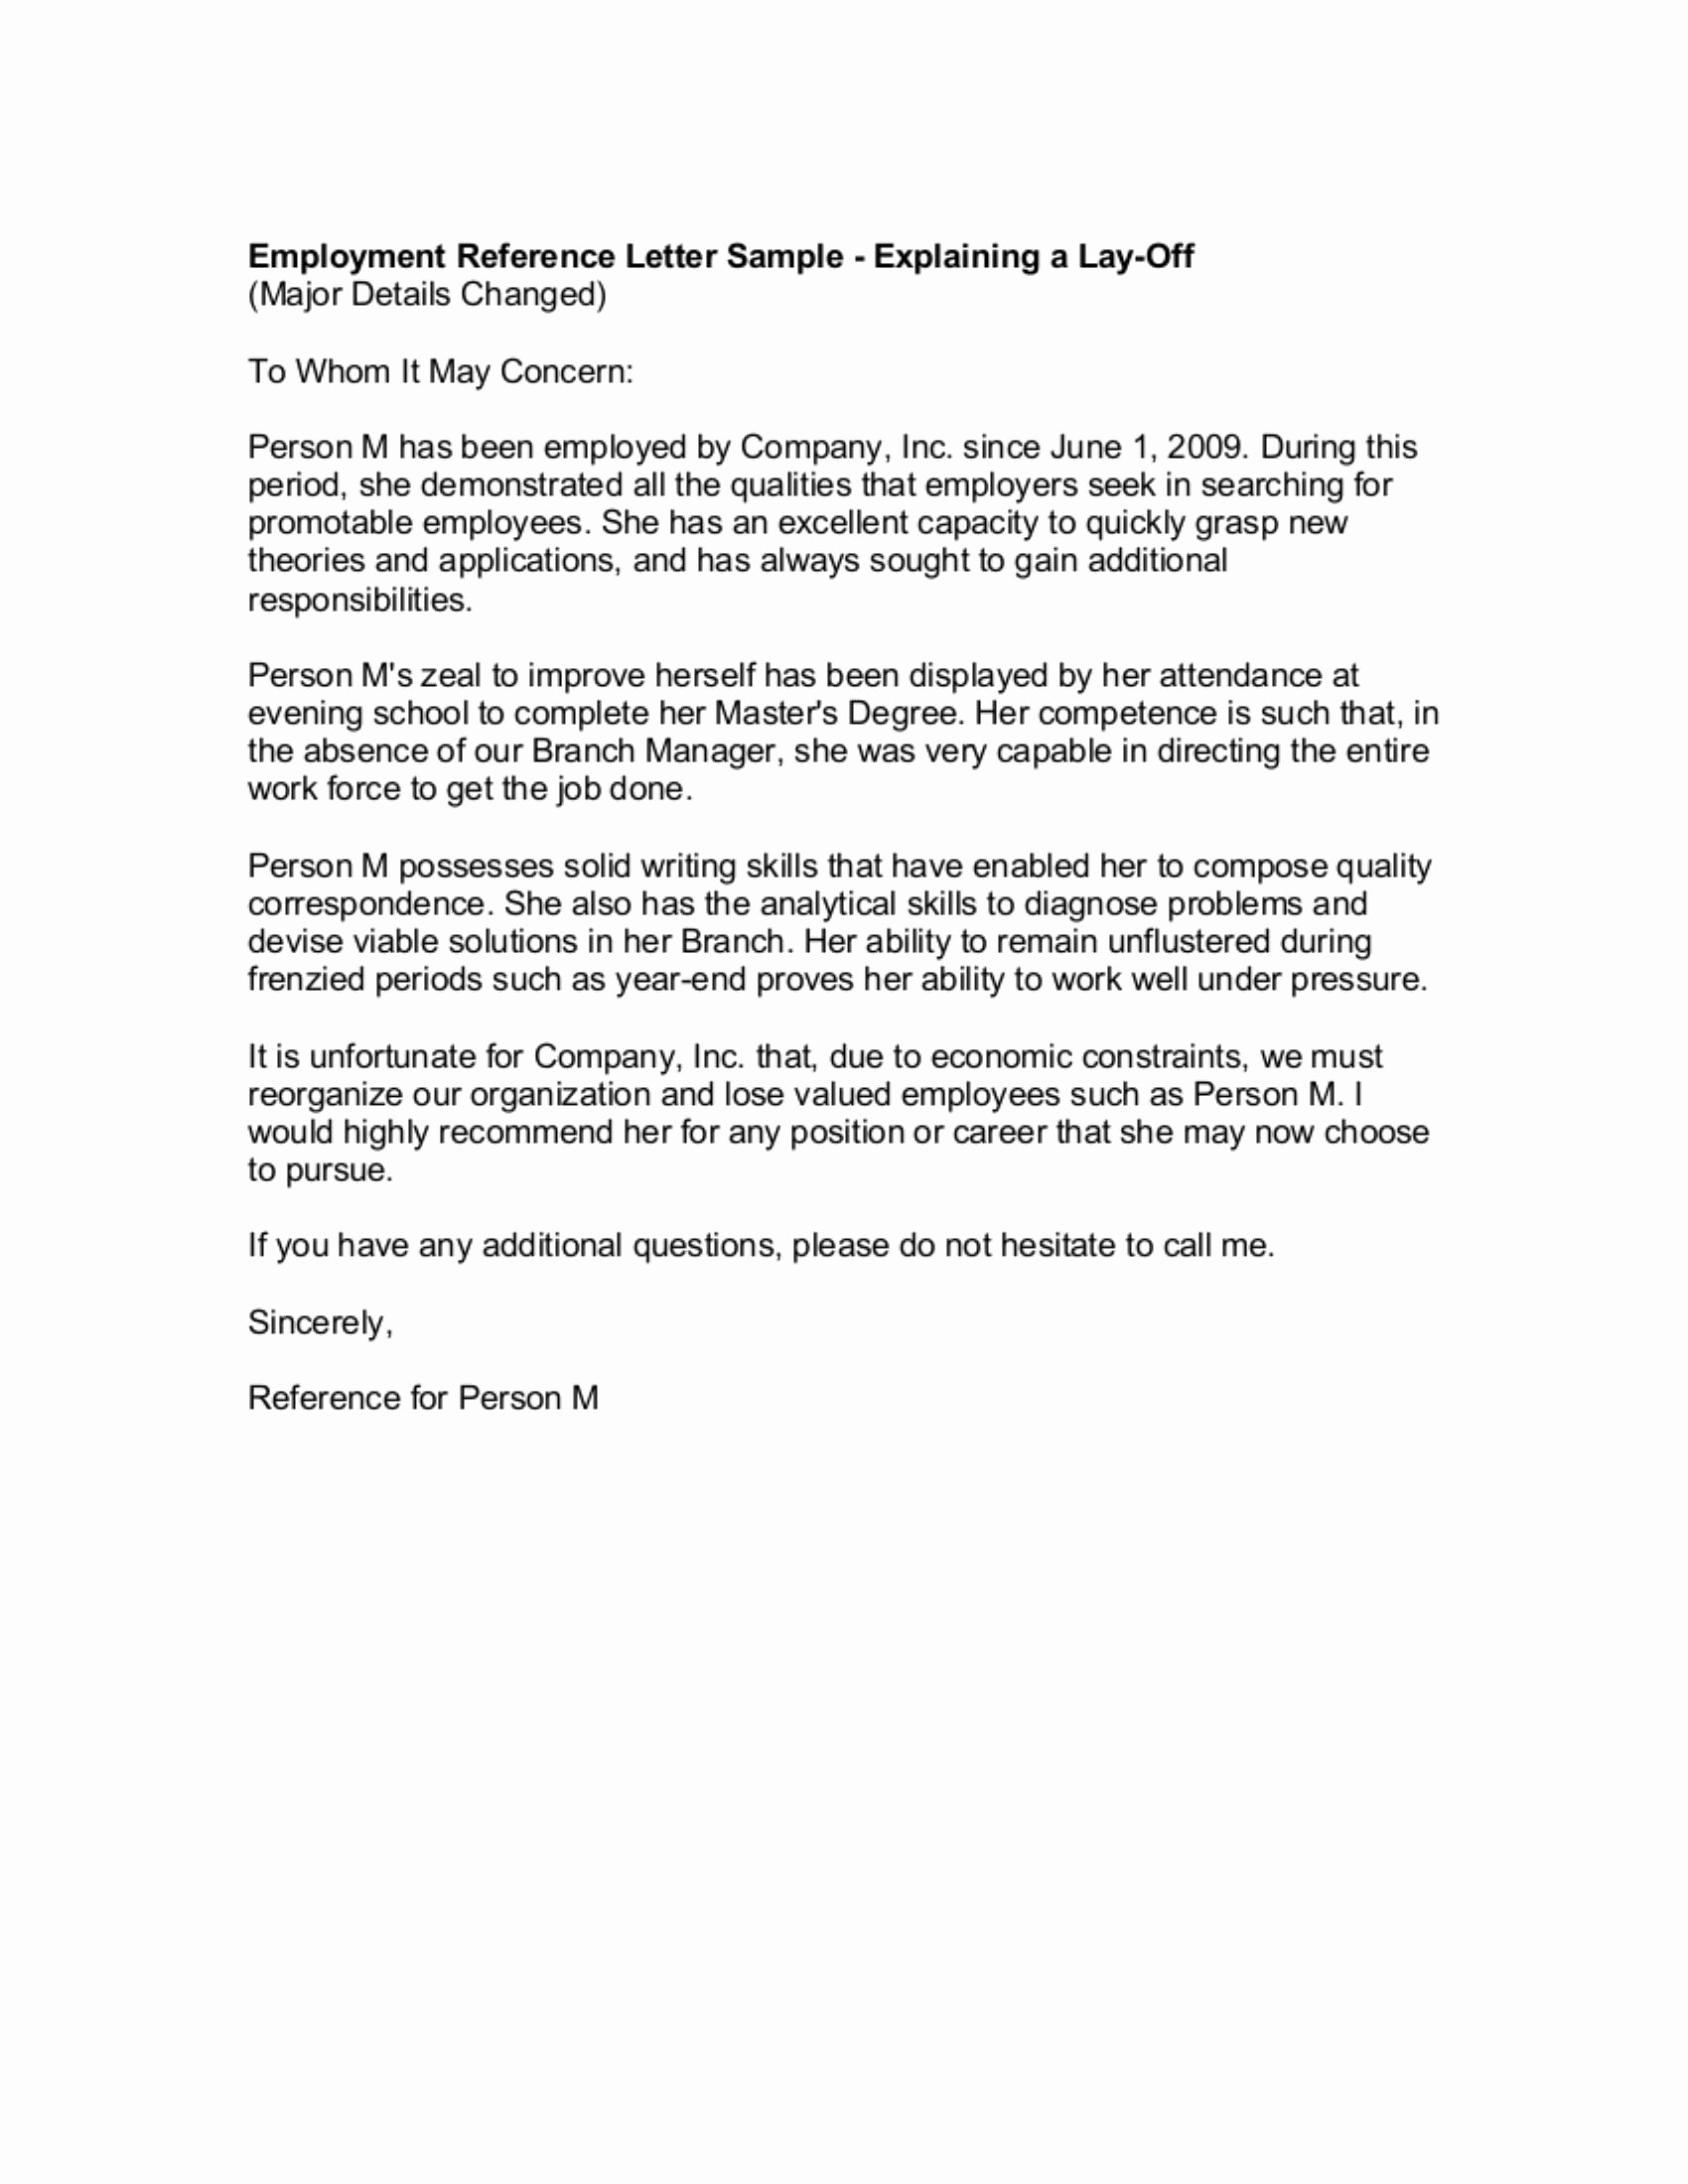 Reference Letters From Employers Beautiful 9 Reference Letter From A Previous Employer Examples